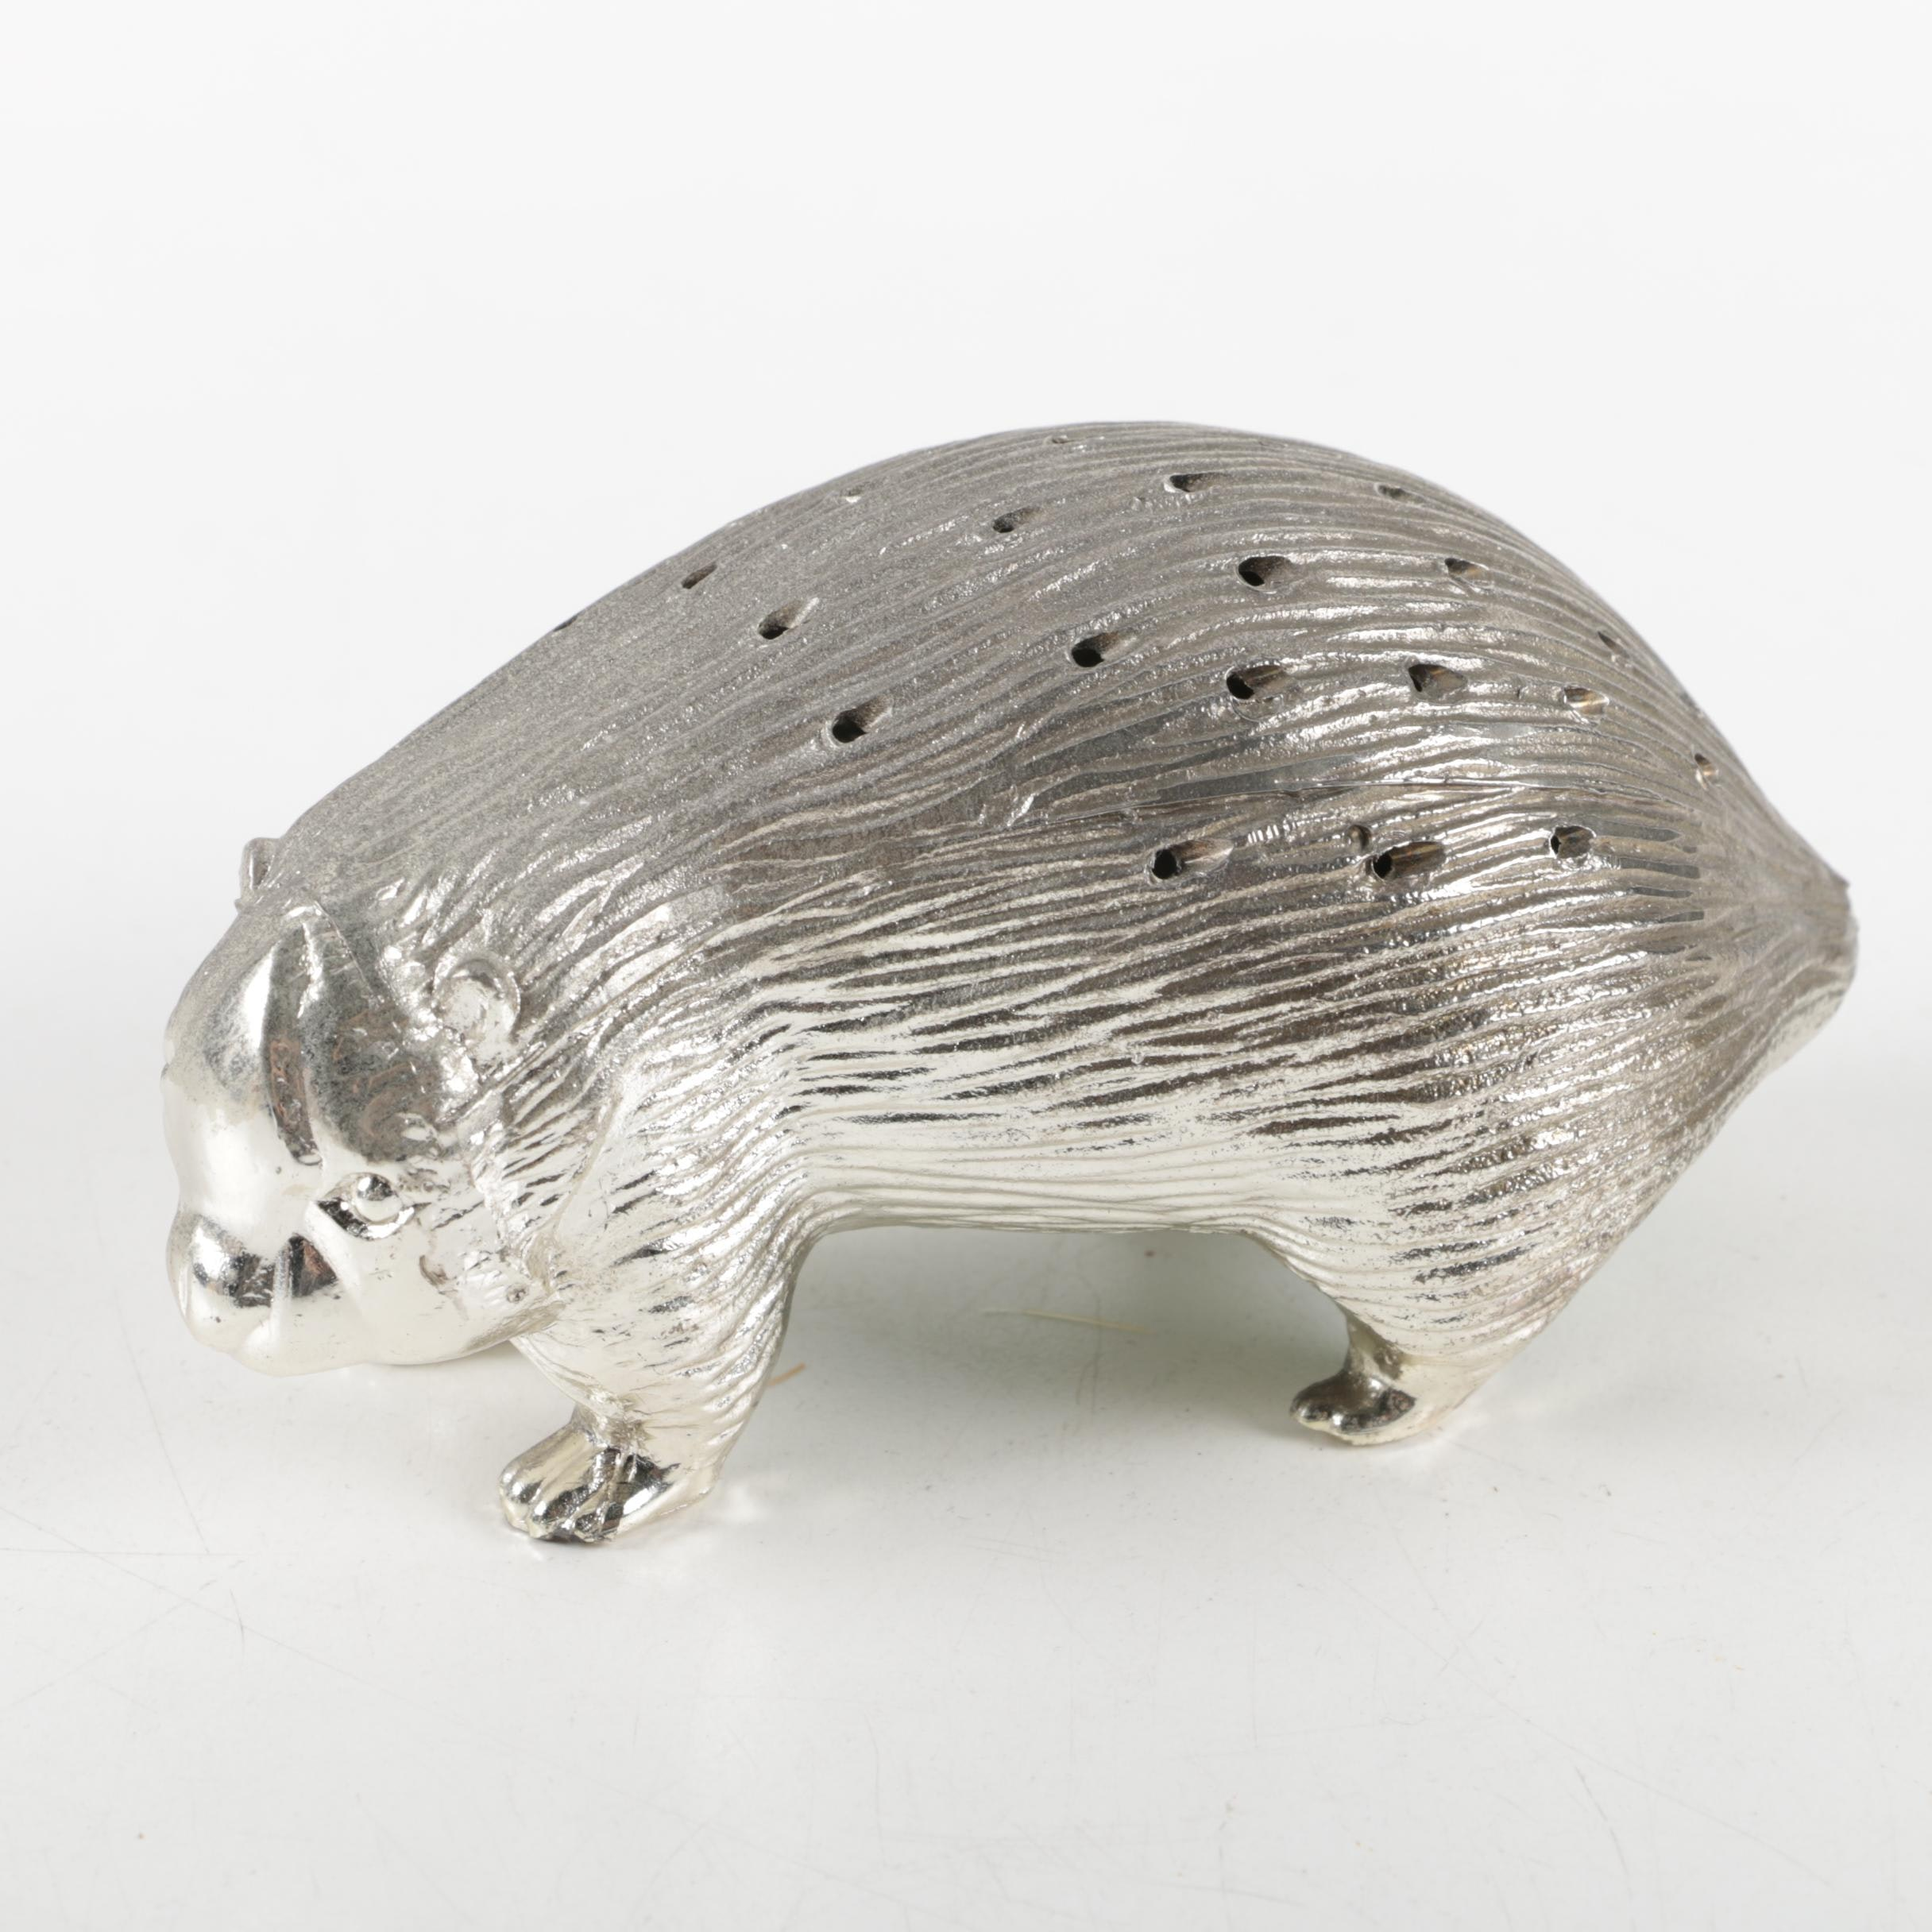 Silver Plate Porcupine Toothpick Holder ... & Silver Plate Porcupine Toothpick Holder : EBTH